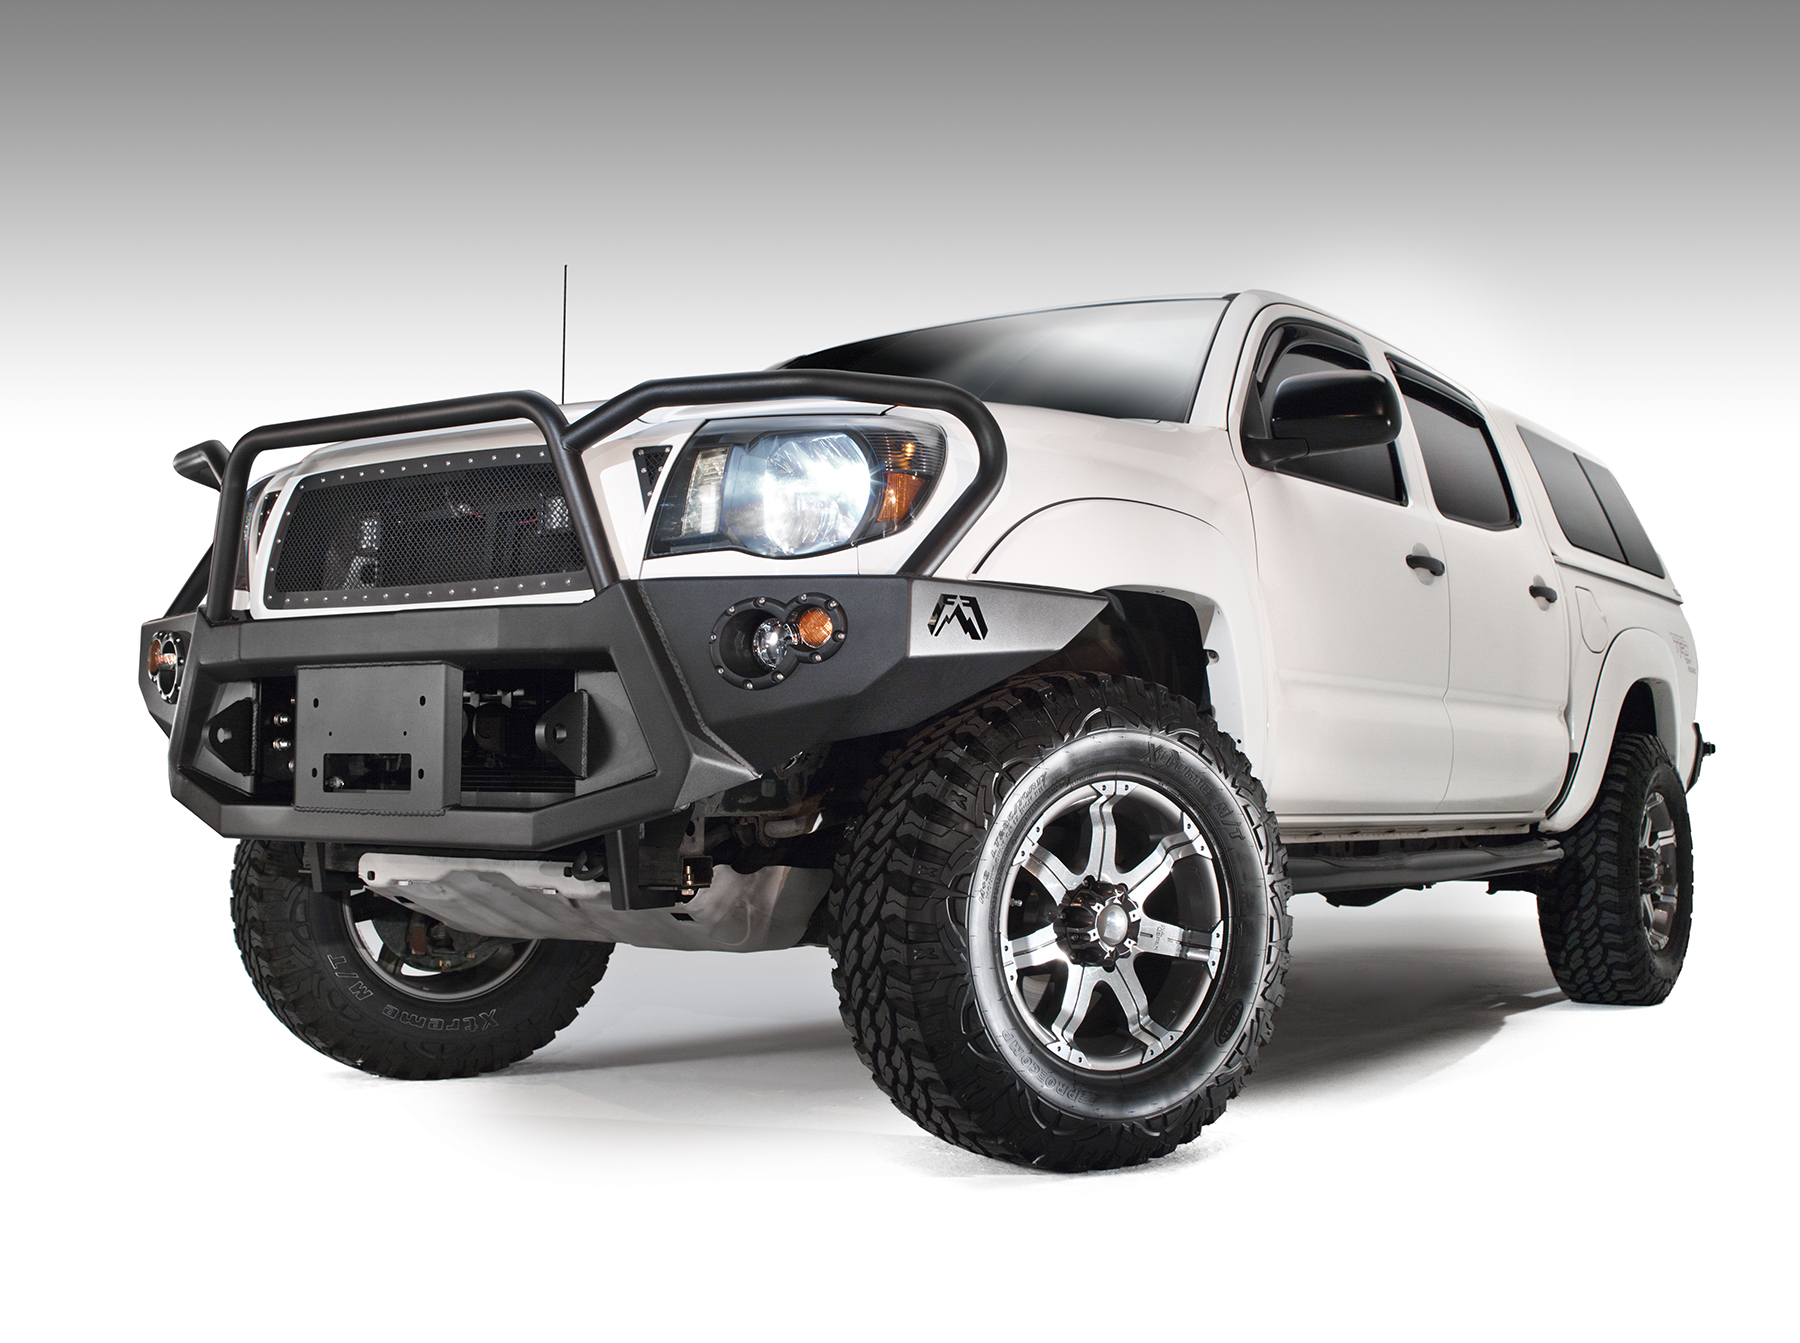 Fab Fours Premium Front Bumper W/ Full Guard 2005-2011 Tacoma